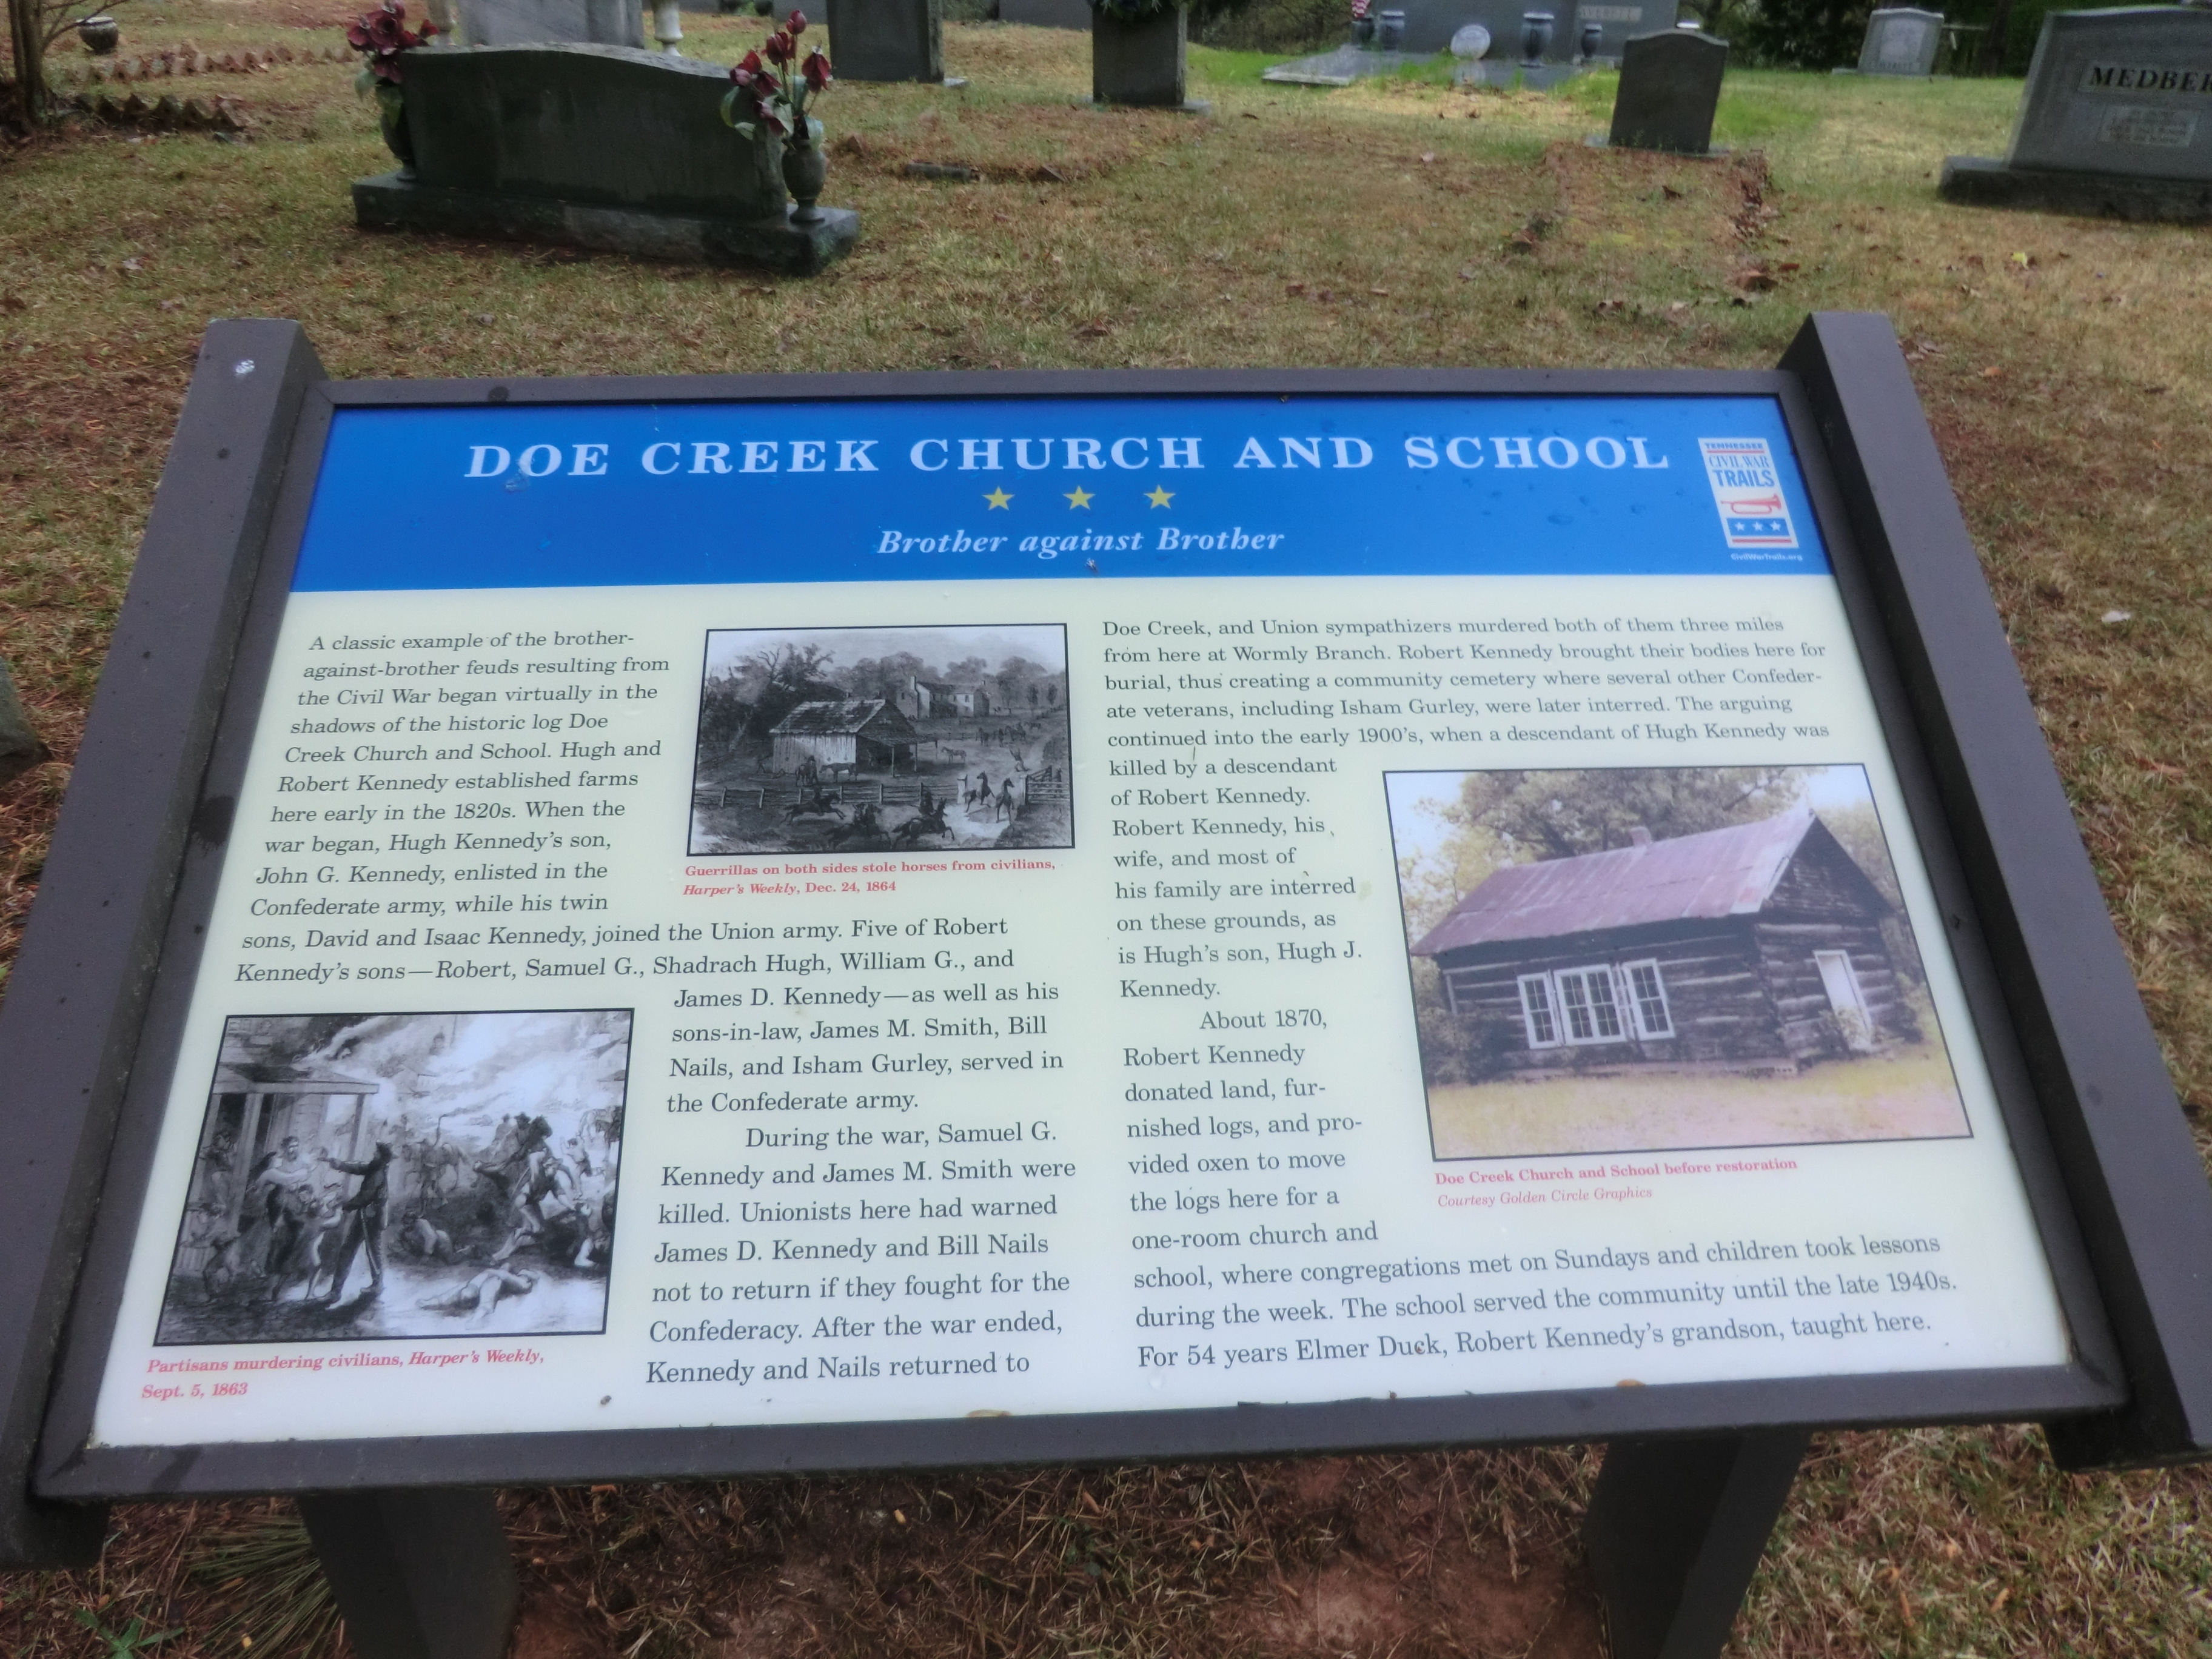 Doe Creek Church and School Marker